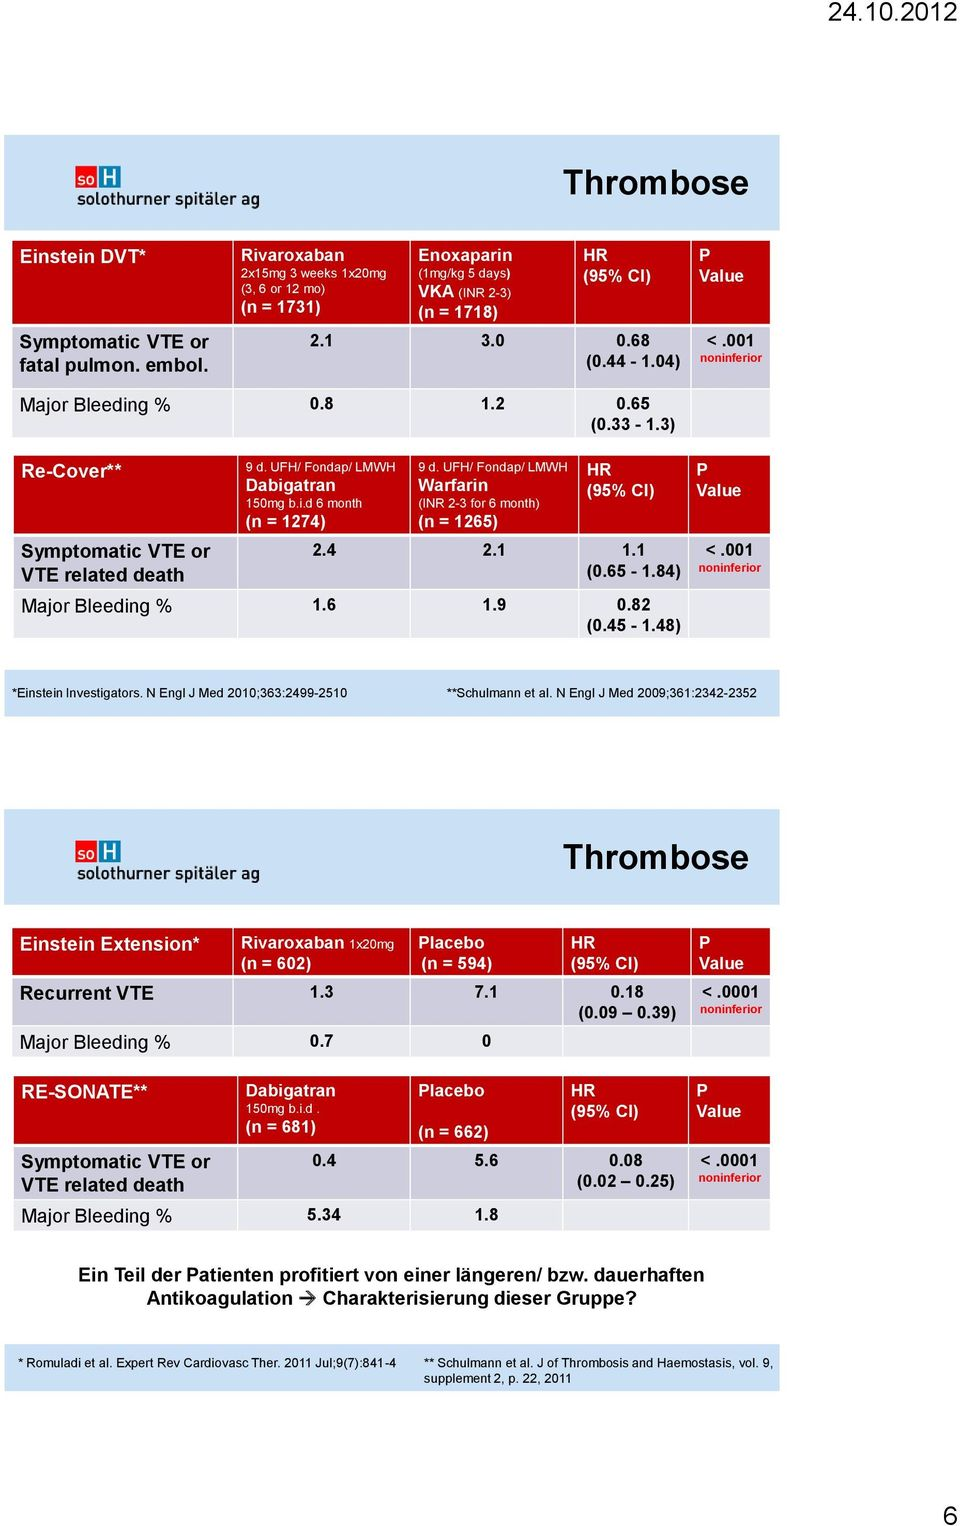 UFH/ Fondap/ LMWH Warfarin (INR 2-3 for 6 month) (n = 1265) HR (95% CI) 2.4 2.1 1.1 (0.65-1.84) Major Bleeding % 1.6 1.9 0.82 (0.45-1.48) P Value <.001 noninferior *Einstein Investigators.